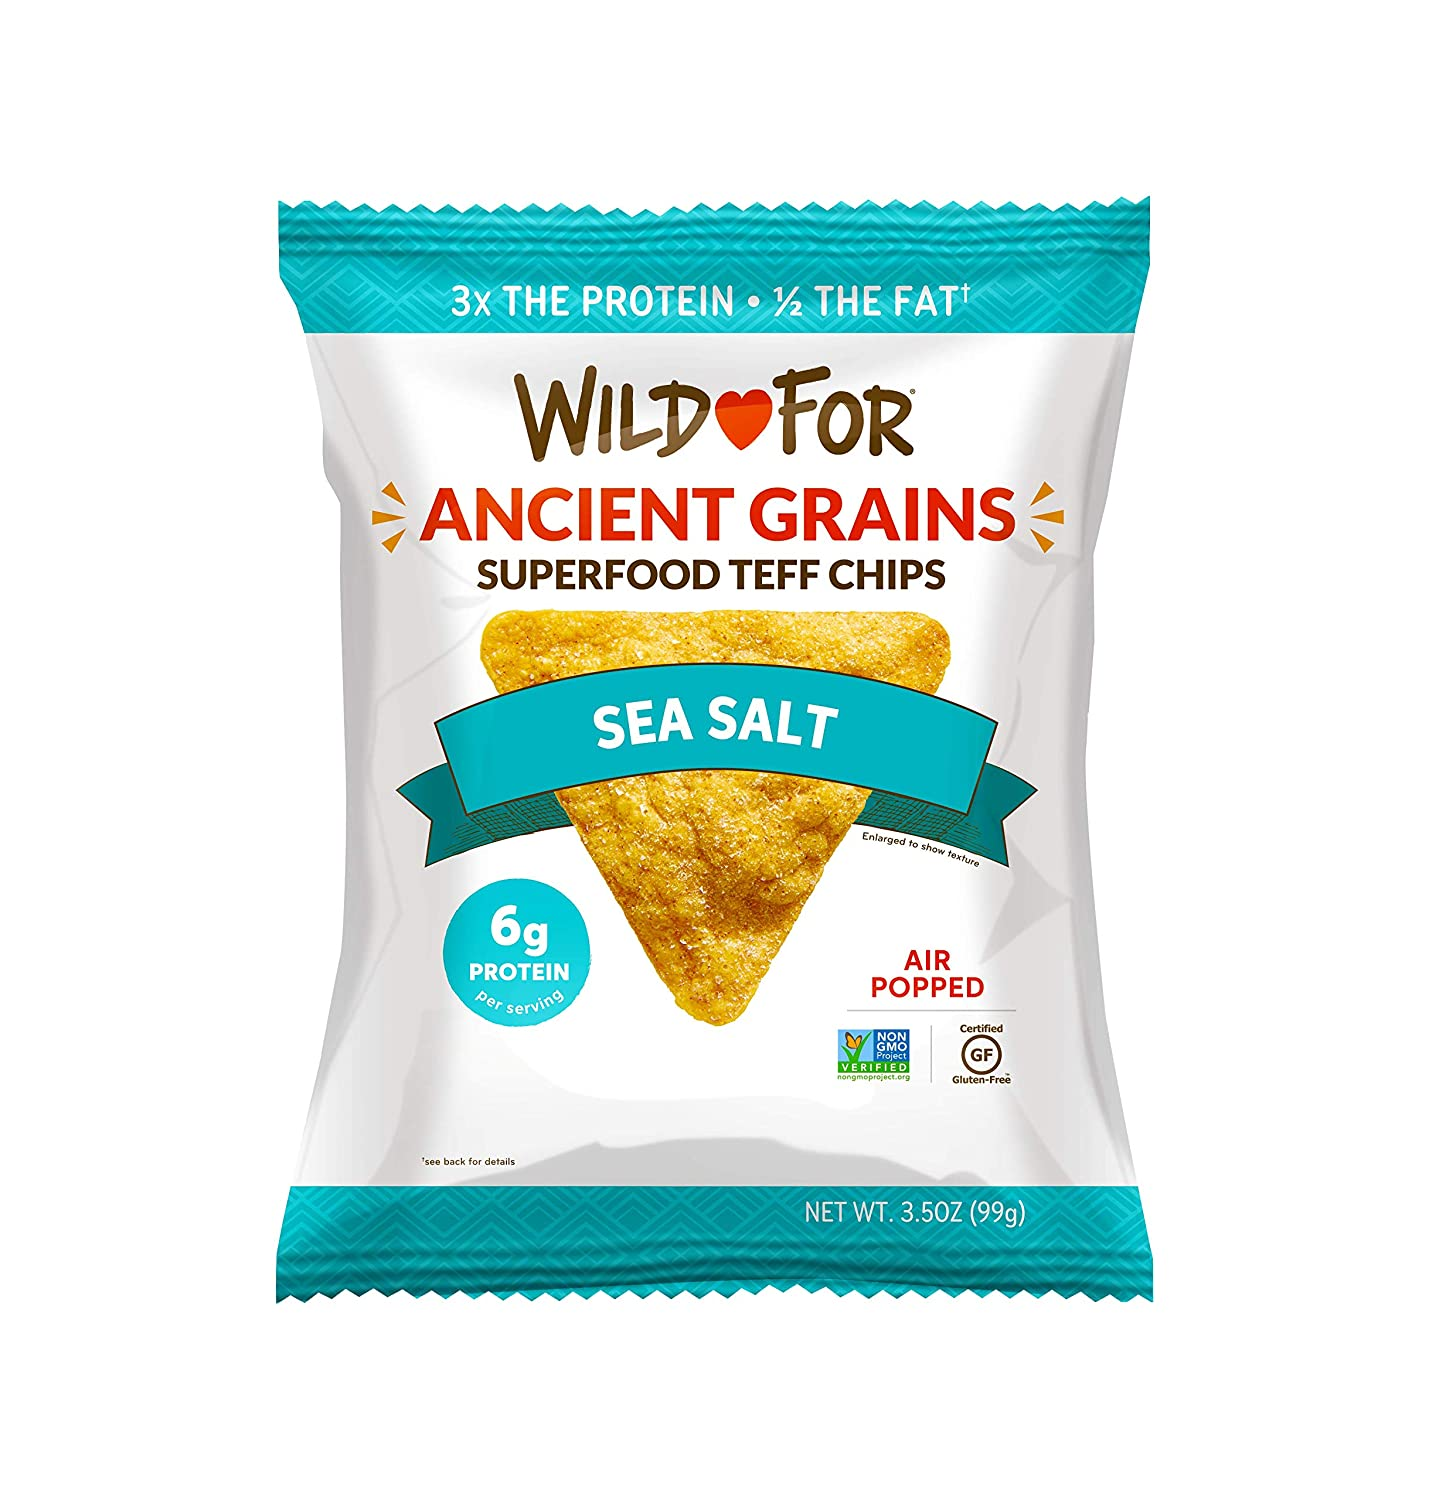 WILD FOR Tortilla Chips | Made with Teff an Ancient Grain | High Plant Protein | Superfood Vegan Snacks | Gluten Free | Sea Salt | 14 oz (4 x 3.5 oz bags)